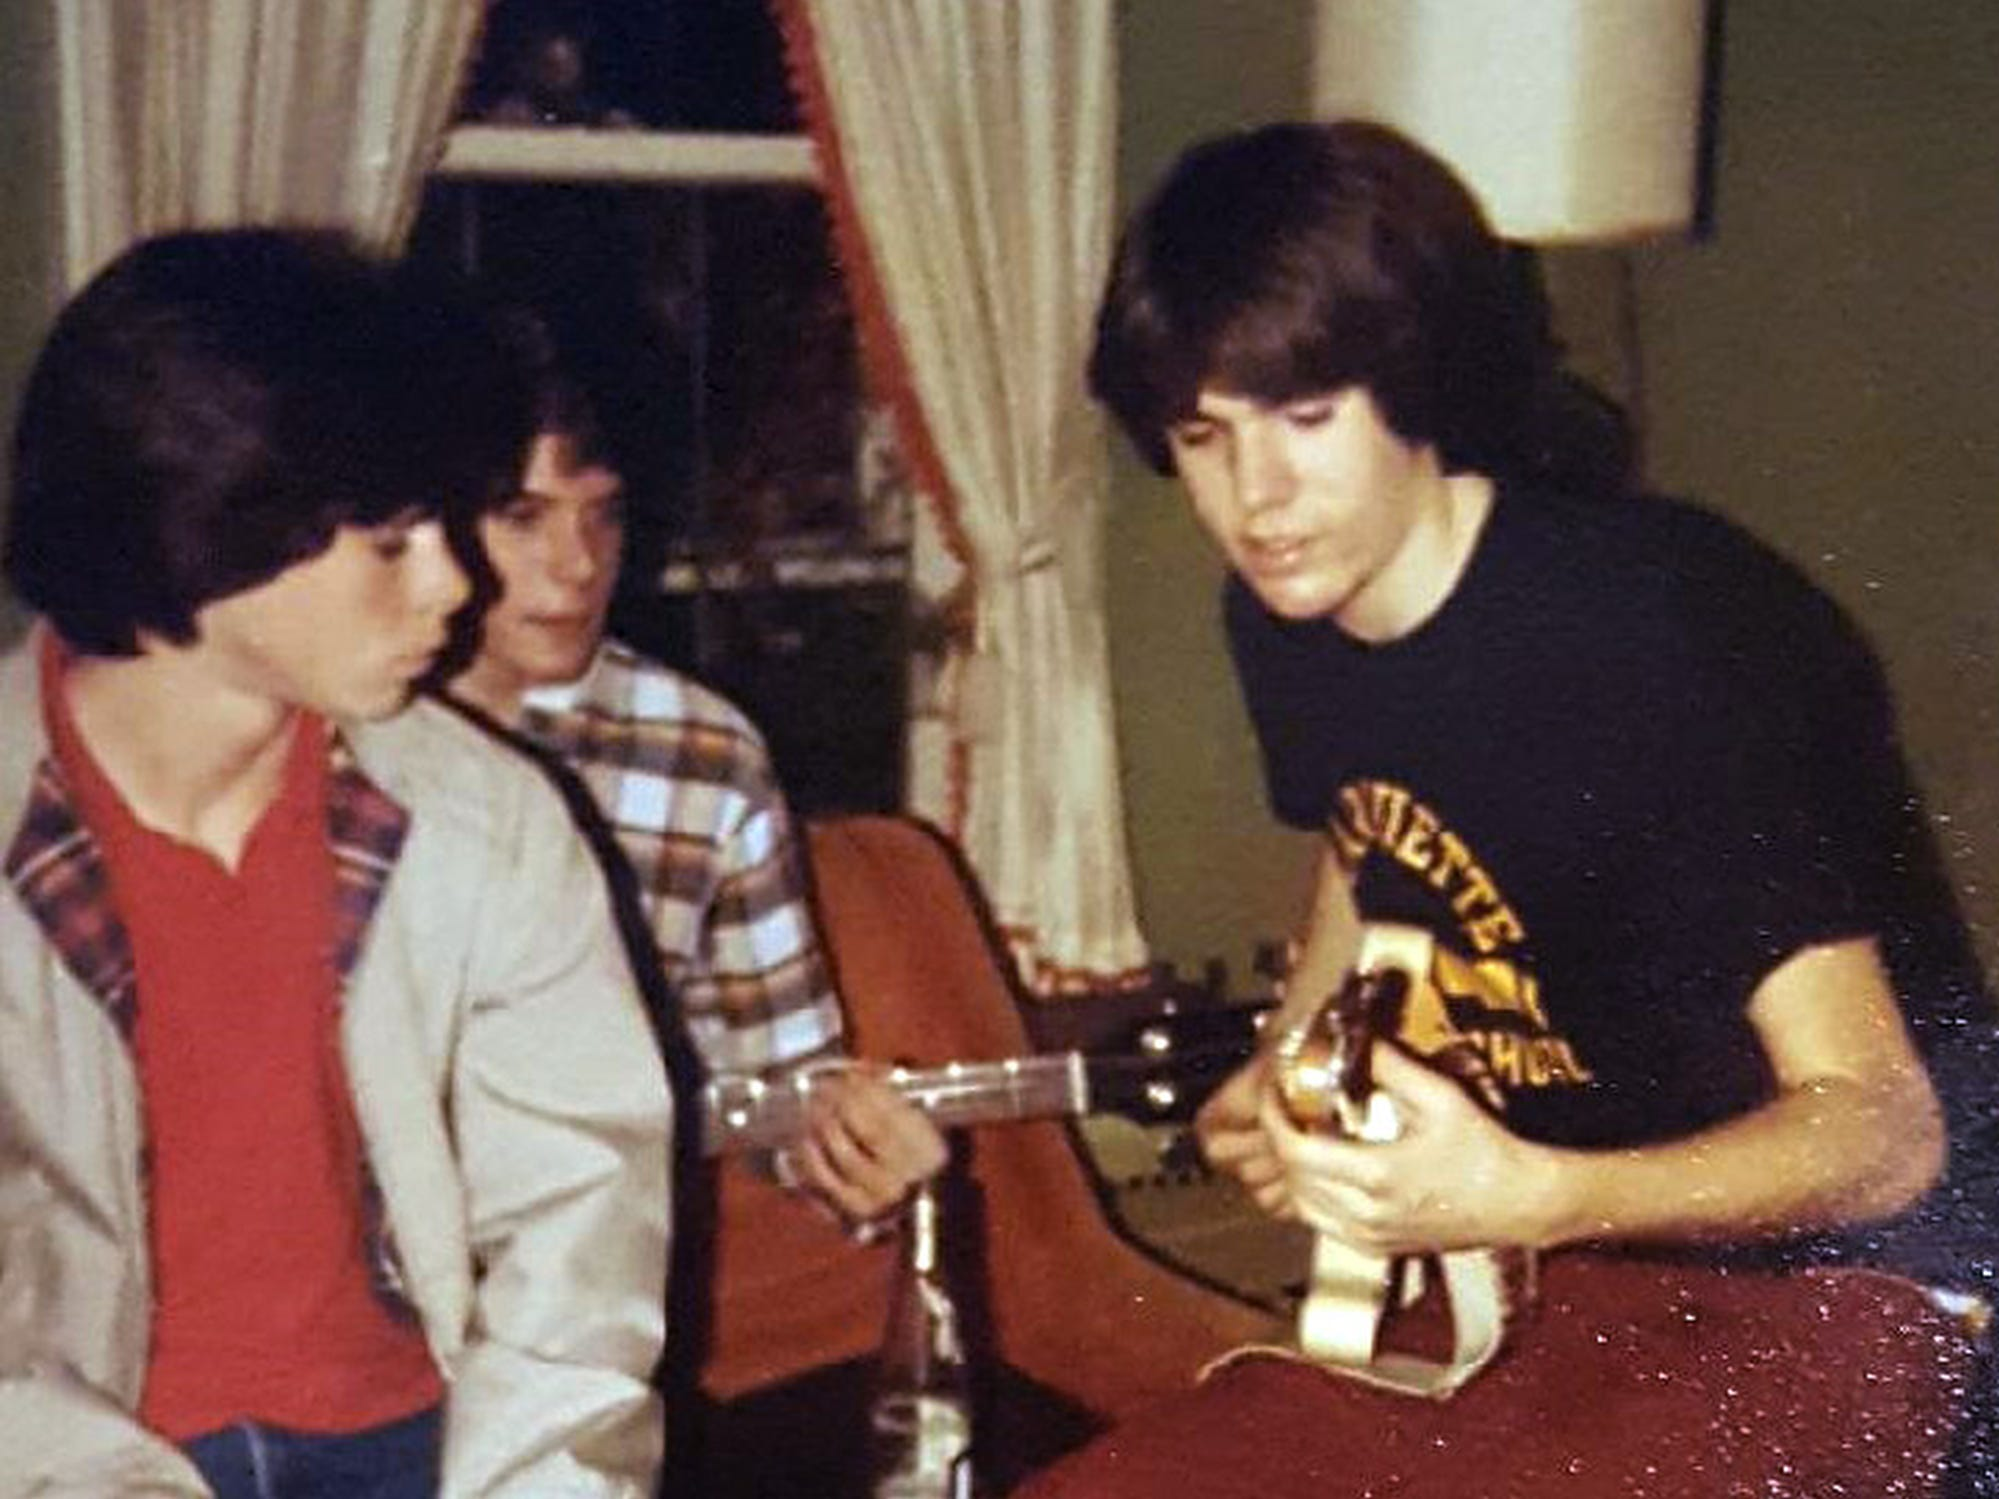 Well-known guitarist Greg Koch plays at one of the many parties at the O'Neill house, this one in 1983. He was invited to return Saturday to play again at a farewell party for the house.